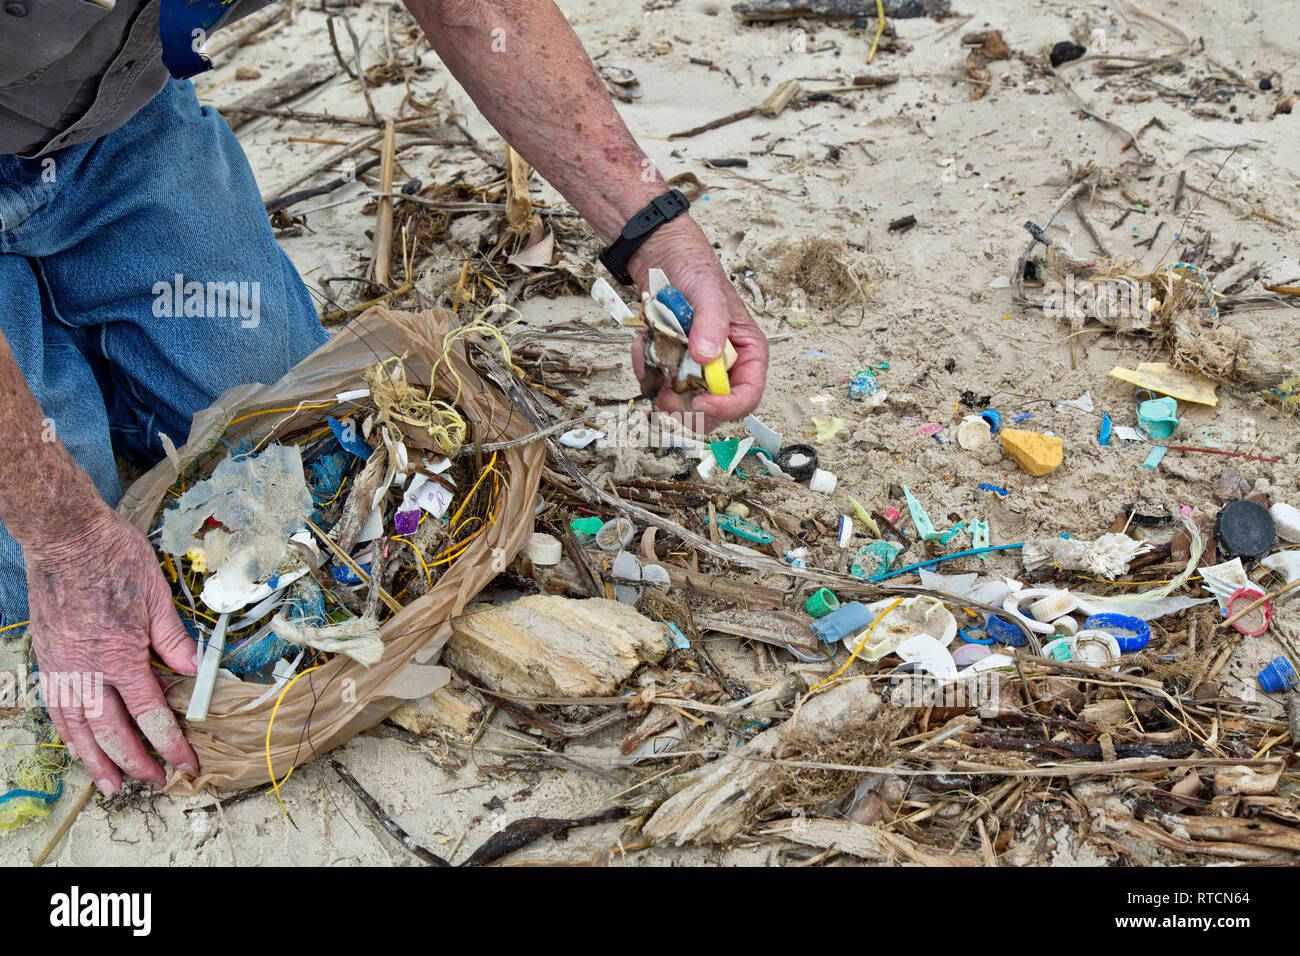 Volunteer cleaning up trash from coastal beach, plastics, manufactured products, fishing line, rope, bottle caps, Gulf Of Mexico. - Stock Image